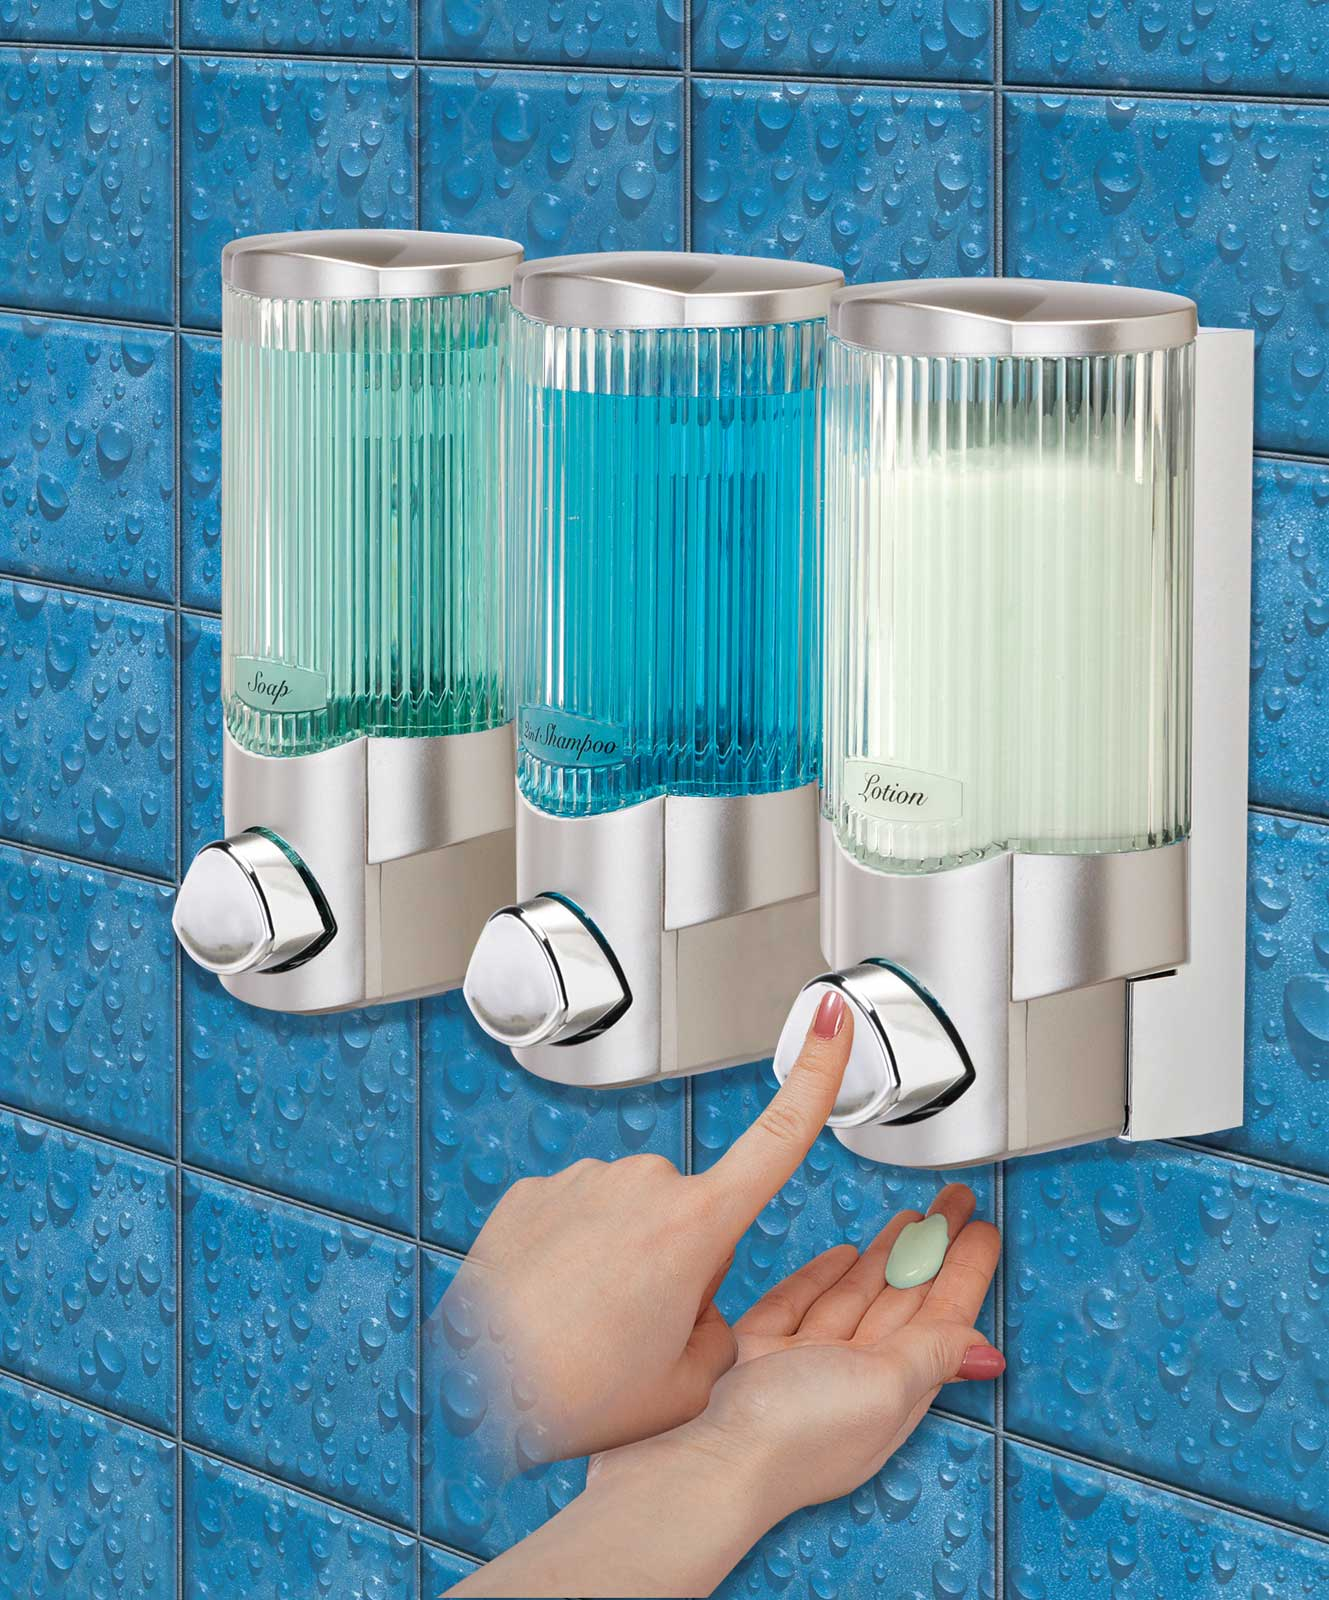 signature shower dispenser iii by better living products in